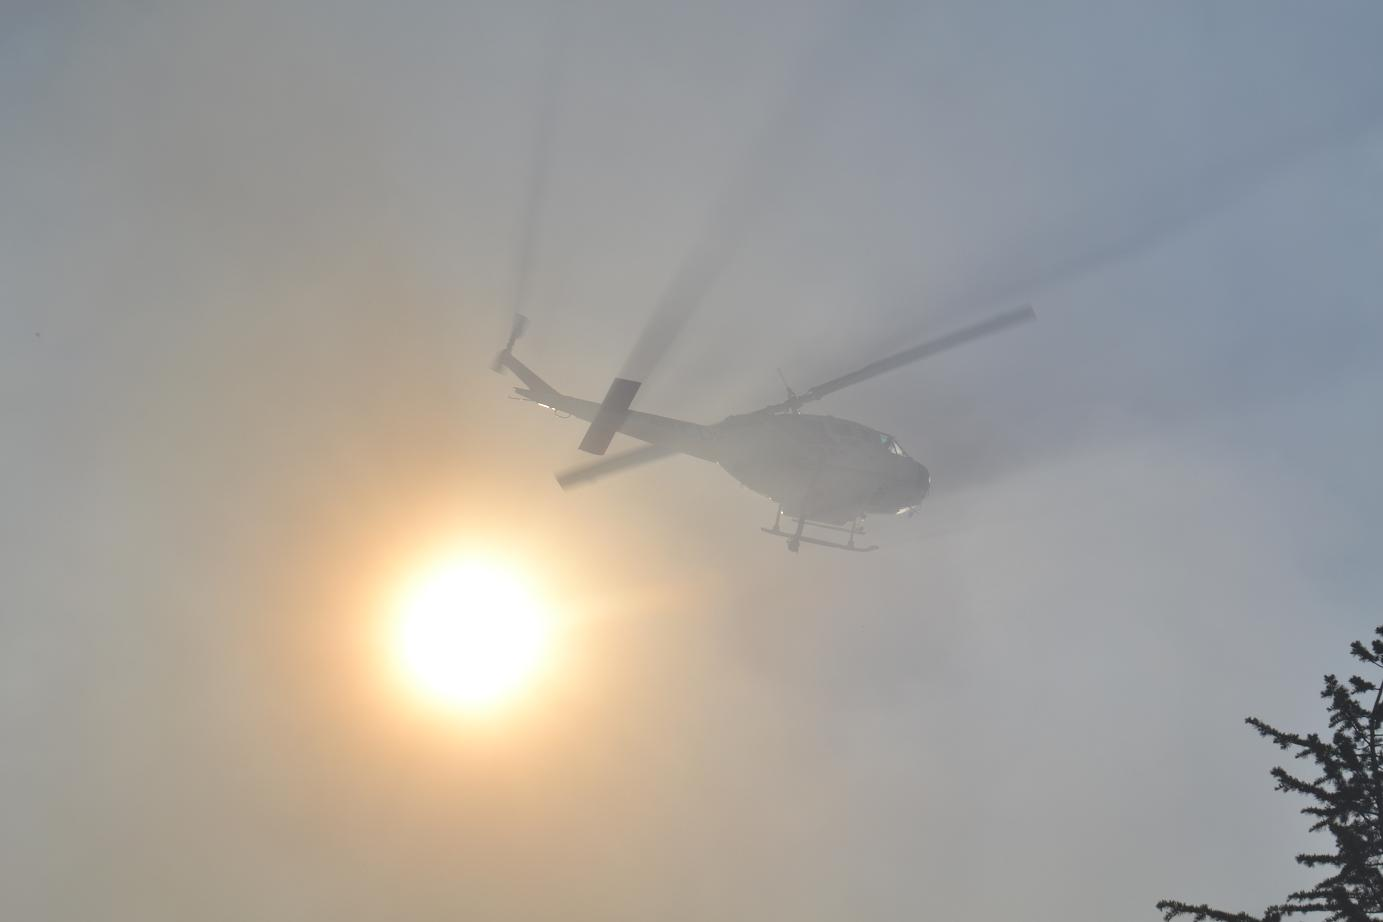 Helicopter lost in the smoke